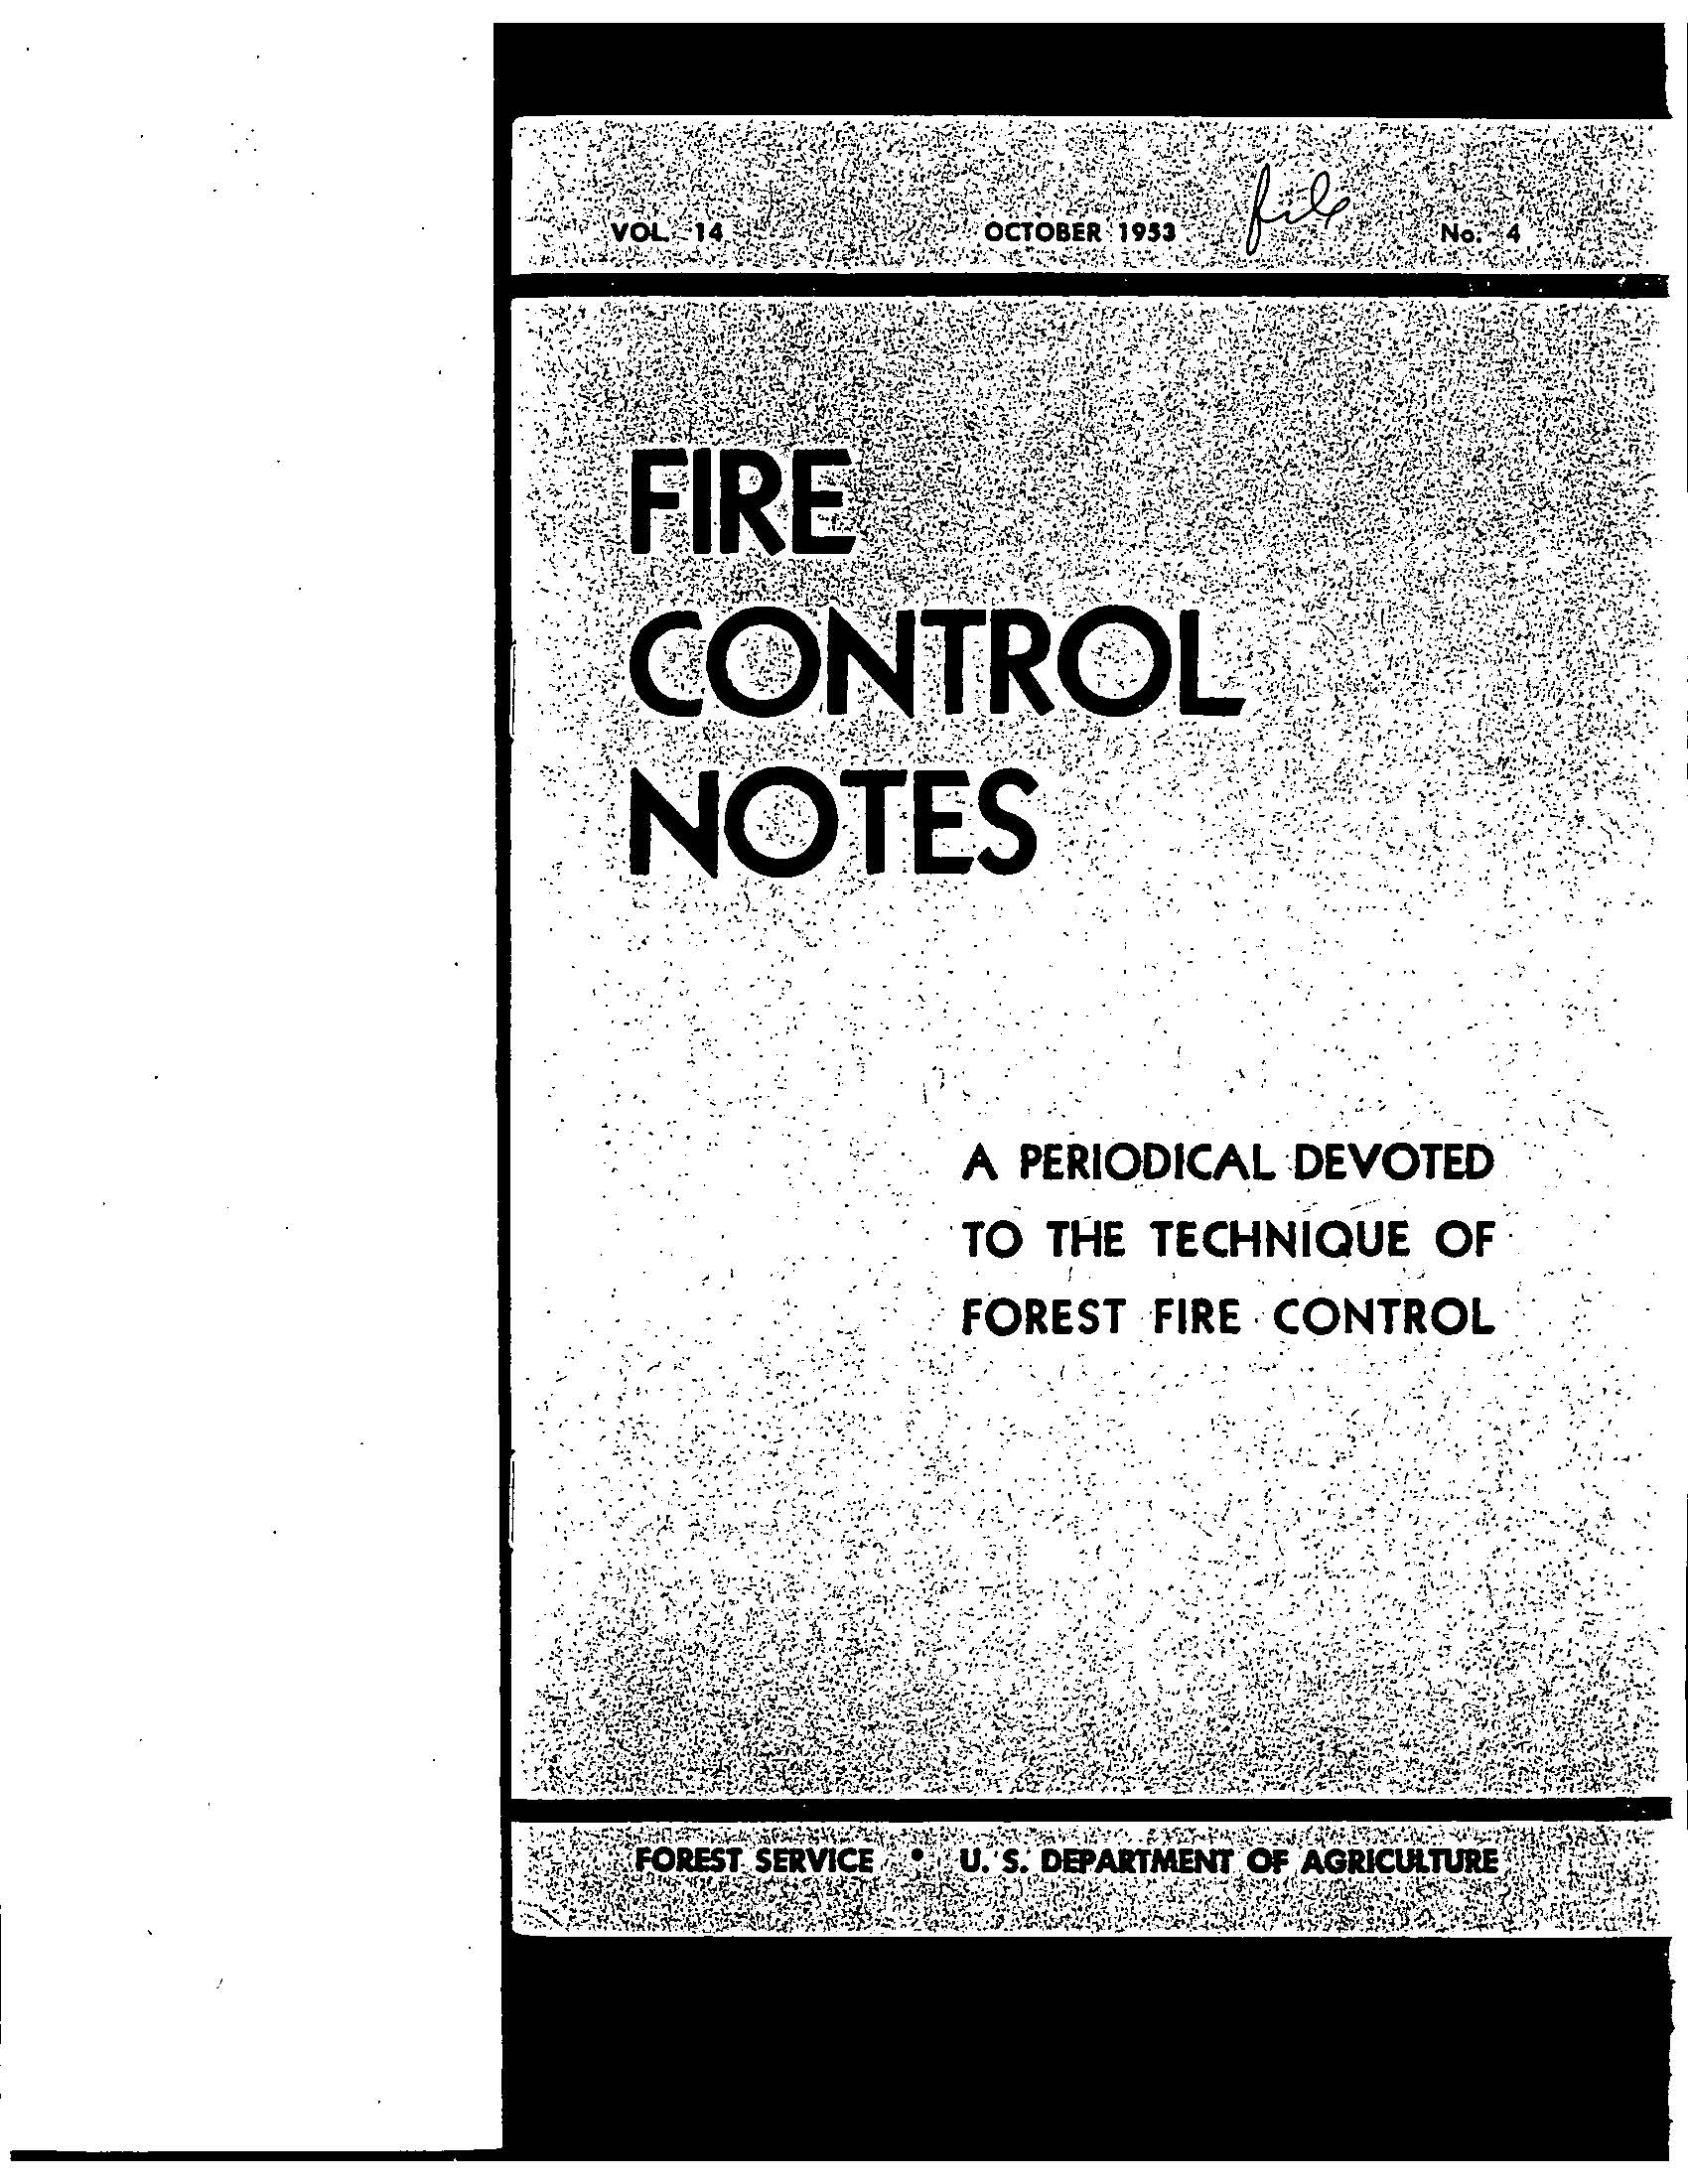 Cover of Fire Management Today Volume 14, Issue 04